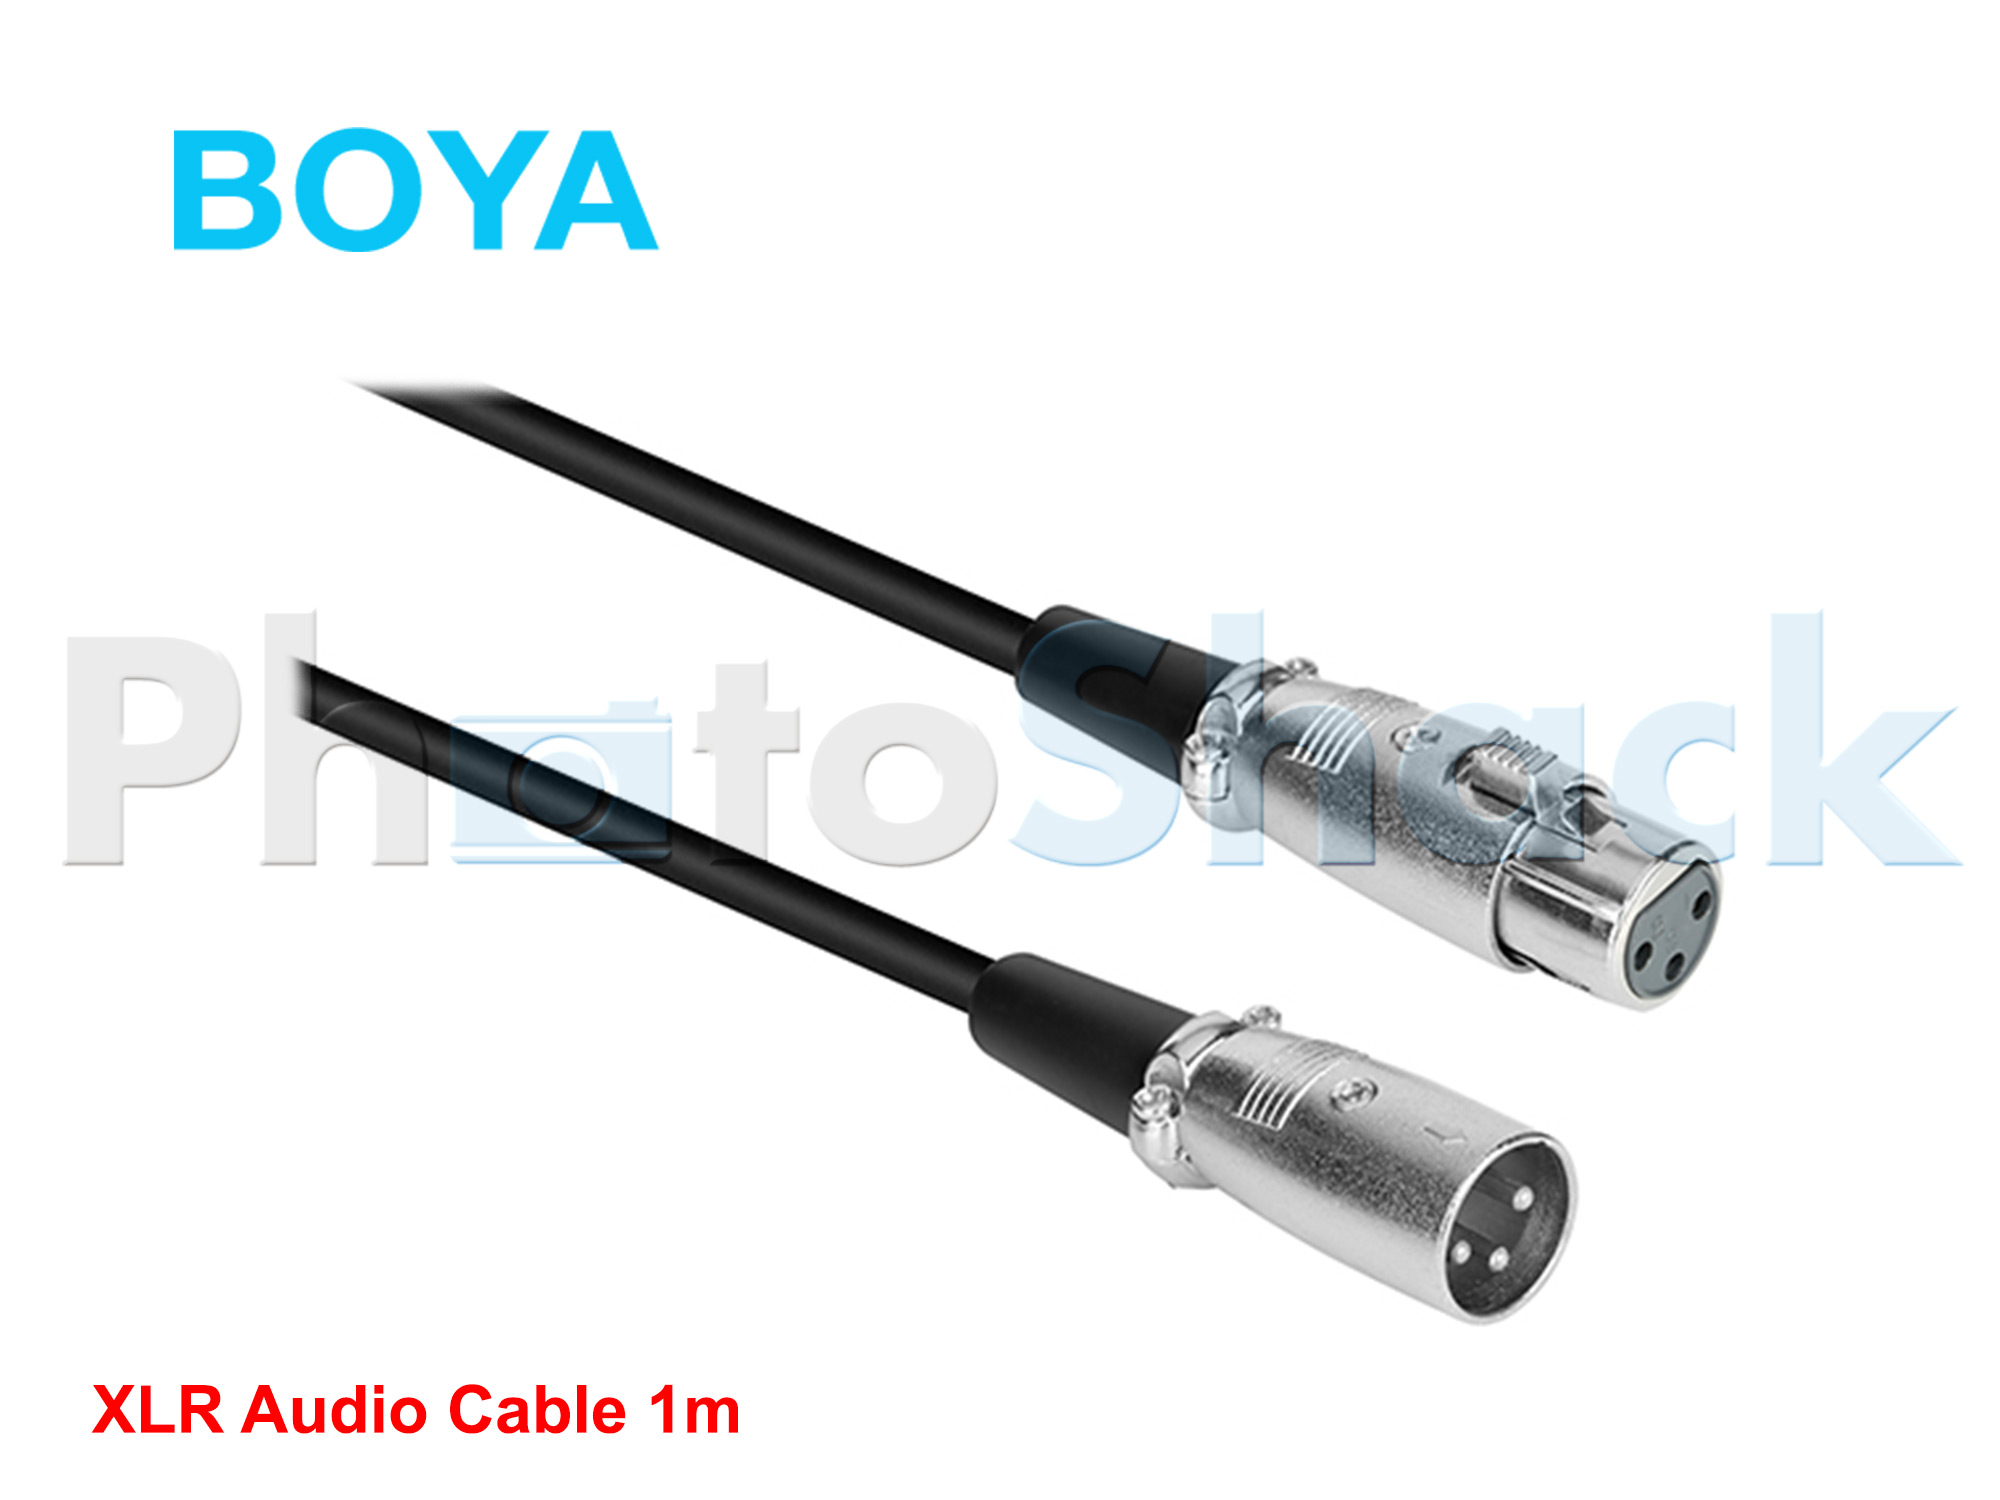 Boya XLR Audio Cable 1m